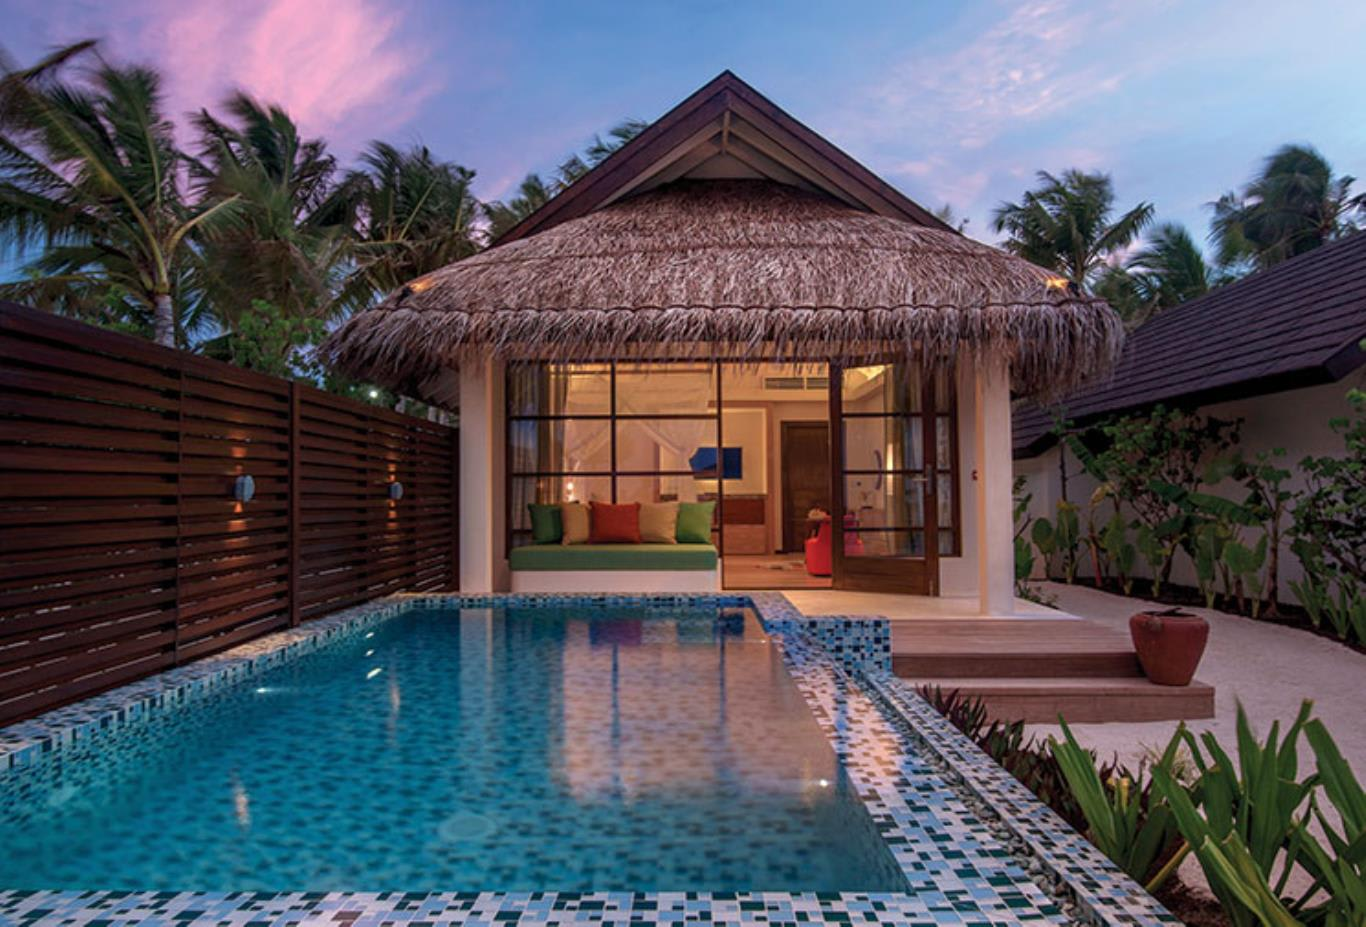 Deluxe Beach Villa Pool exterior view